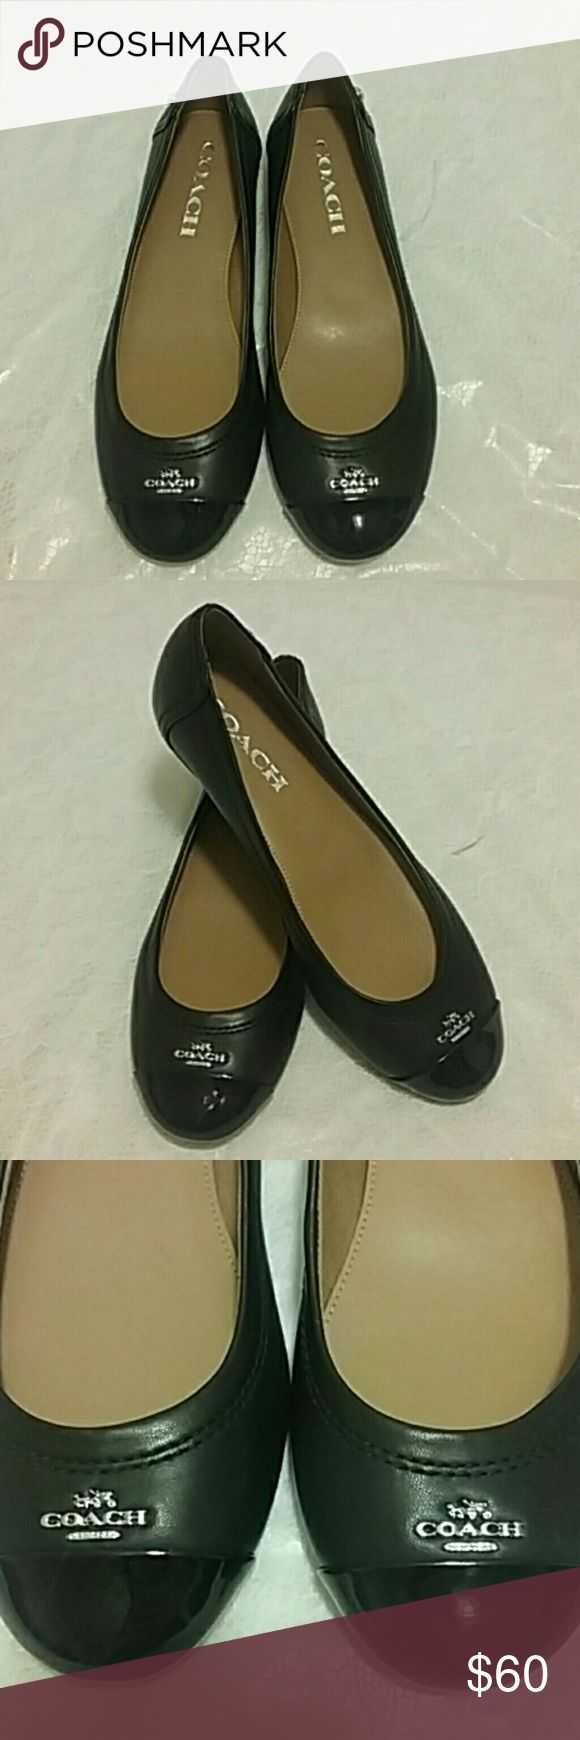 NEW Coach Flats Brand new black Coach flats insole is light tan says coach front toe has coach logo & says coach in silver. top of toes are shiny black. NEW NEW NEW! ! ! coach  Shoes Flats & Loafers